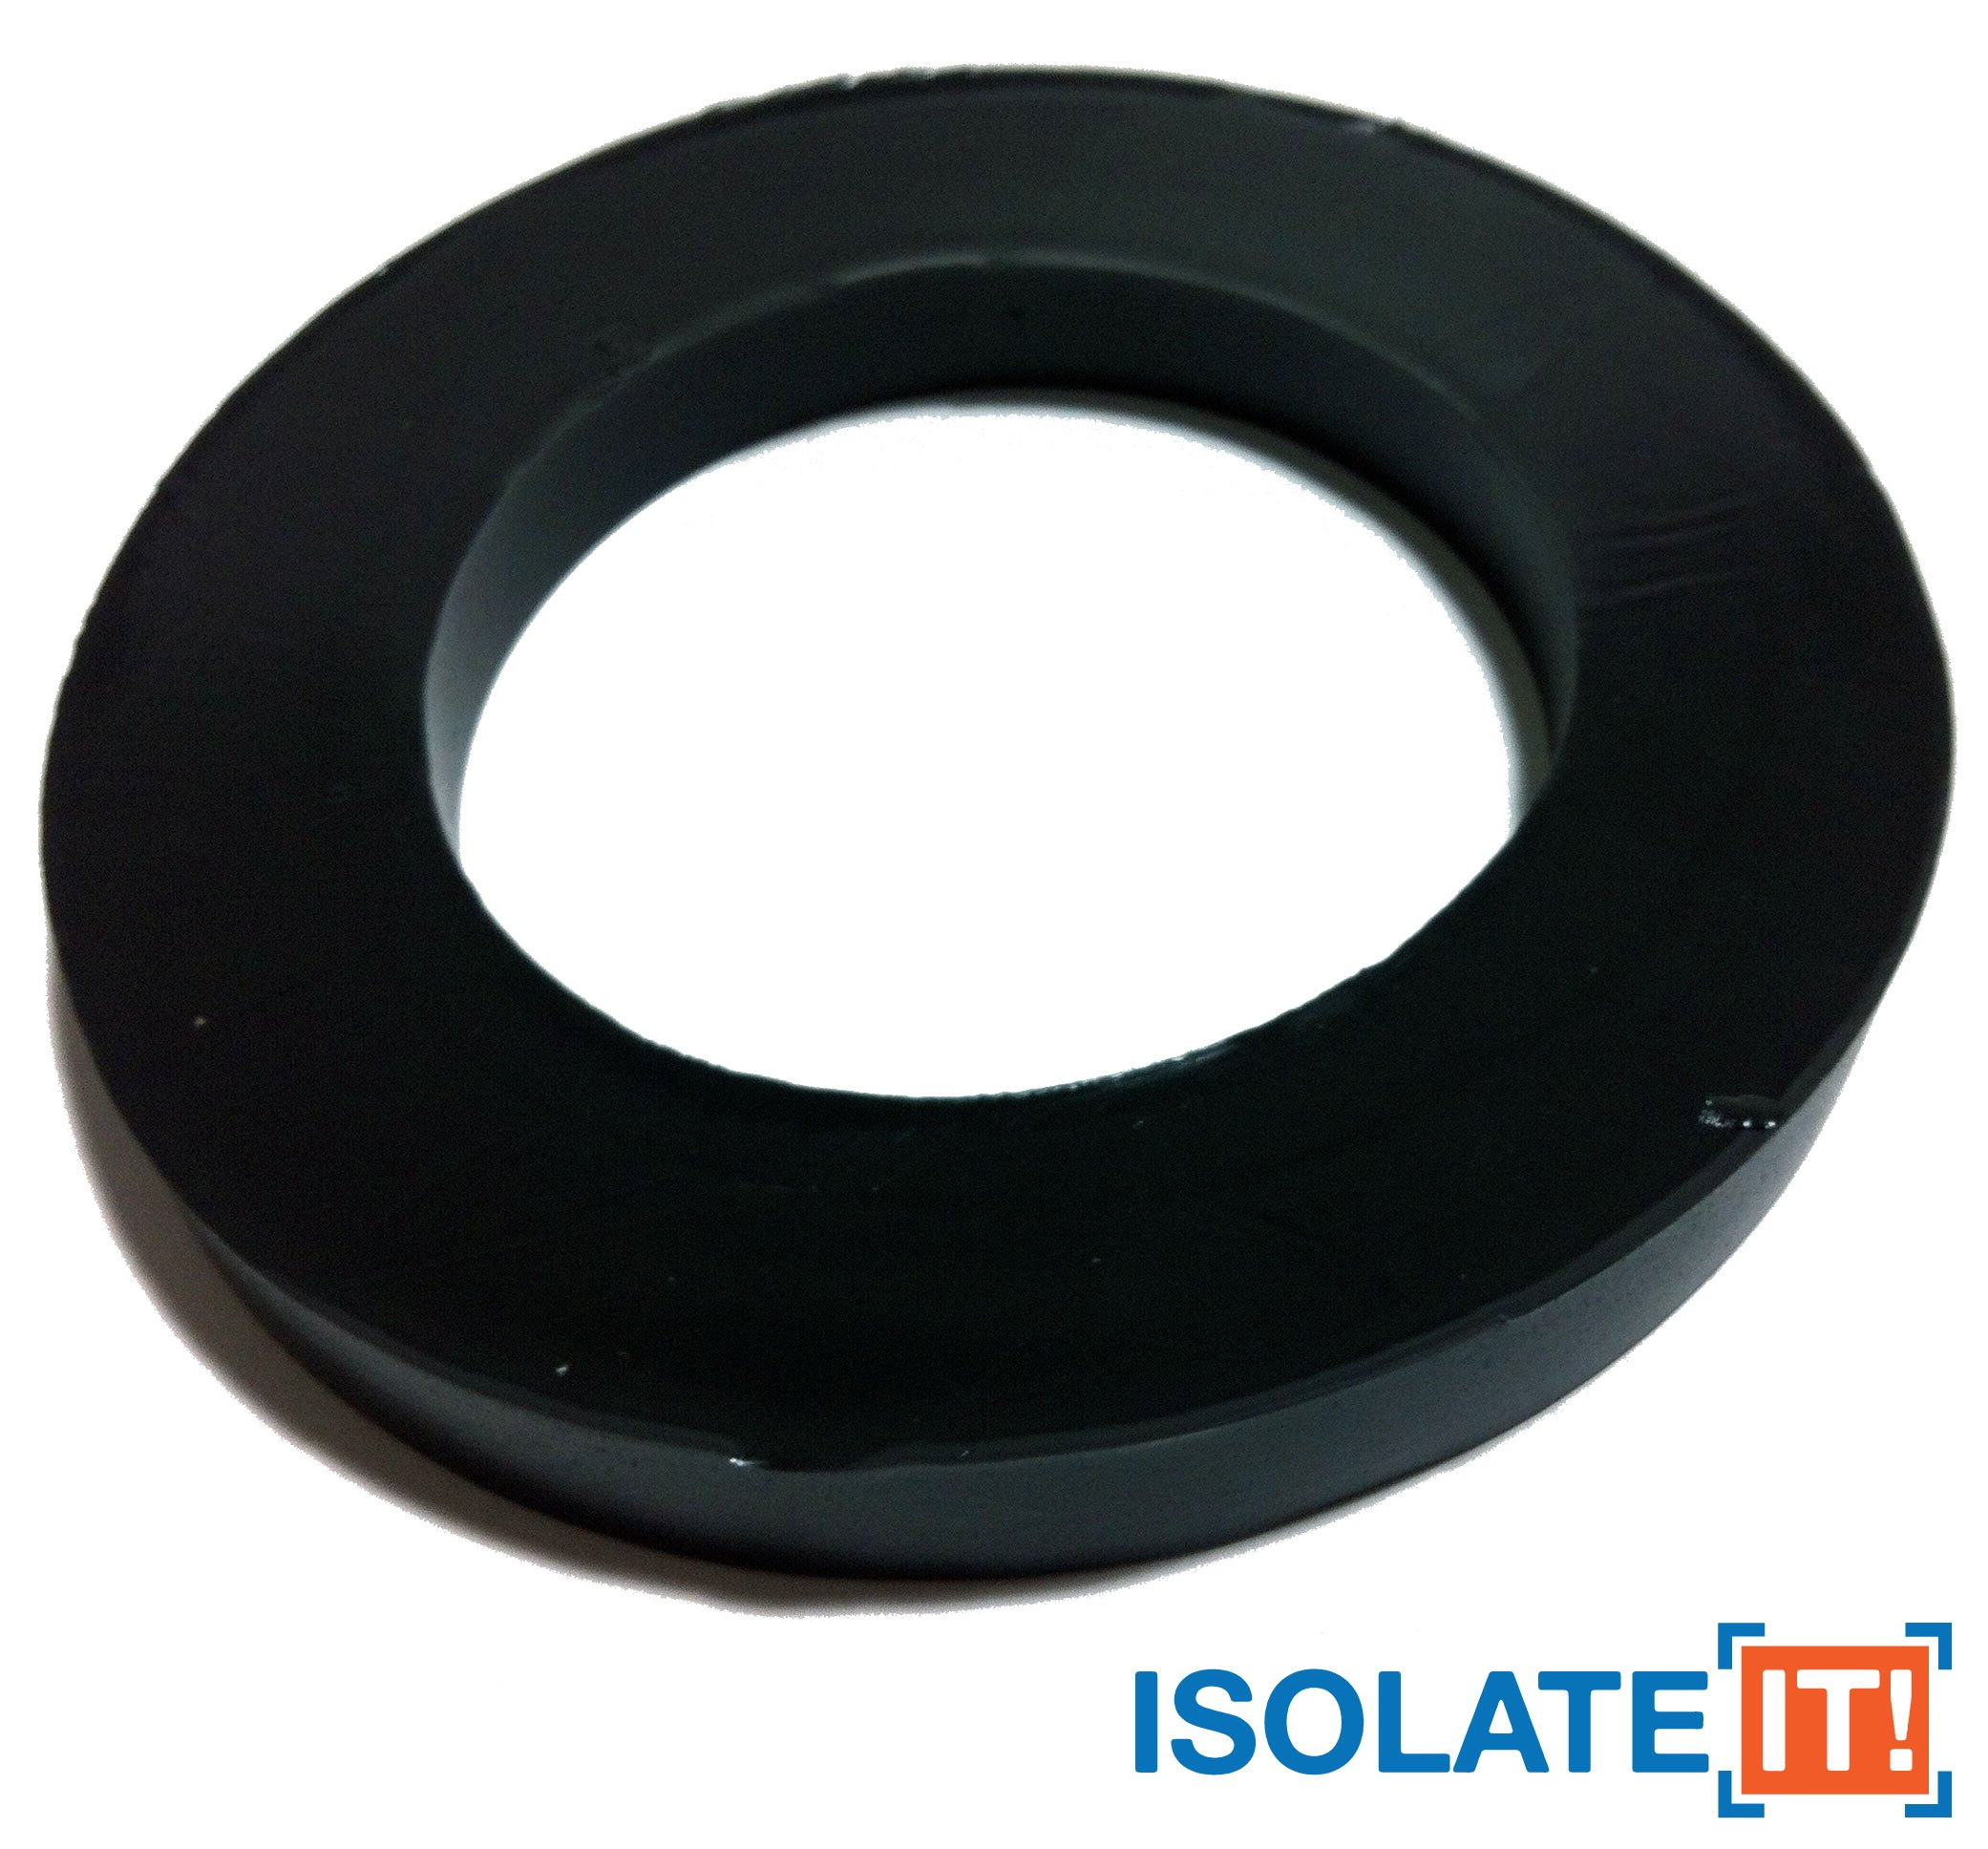 Isolate It: Sorbothane Large Vibration Isolation Washer 5'' OD x 3.1'' ID x 0.5'' Thick 70 Duro - 4 Pack by Isolate It!